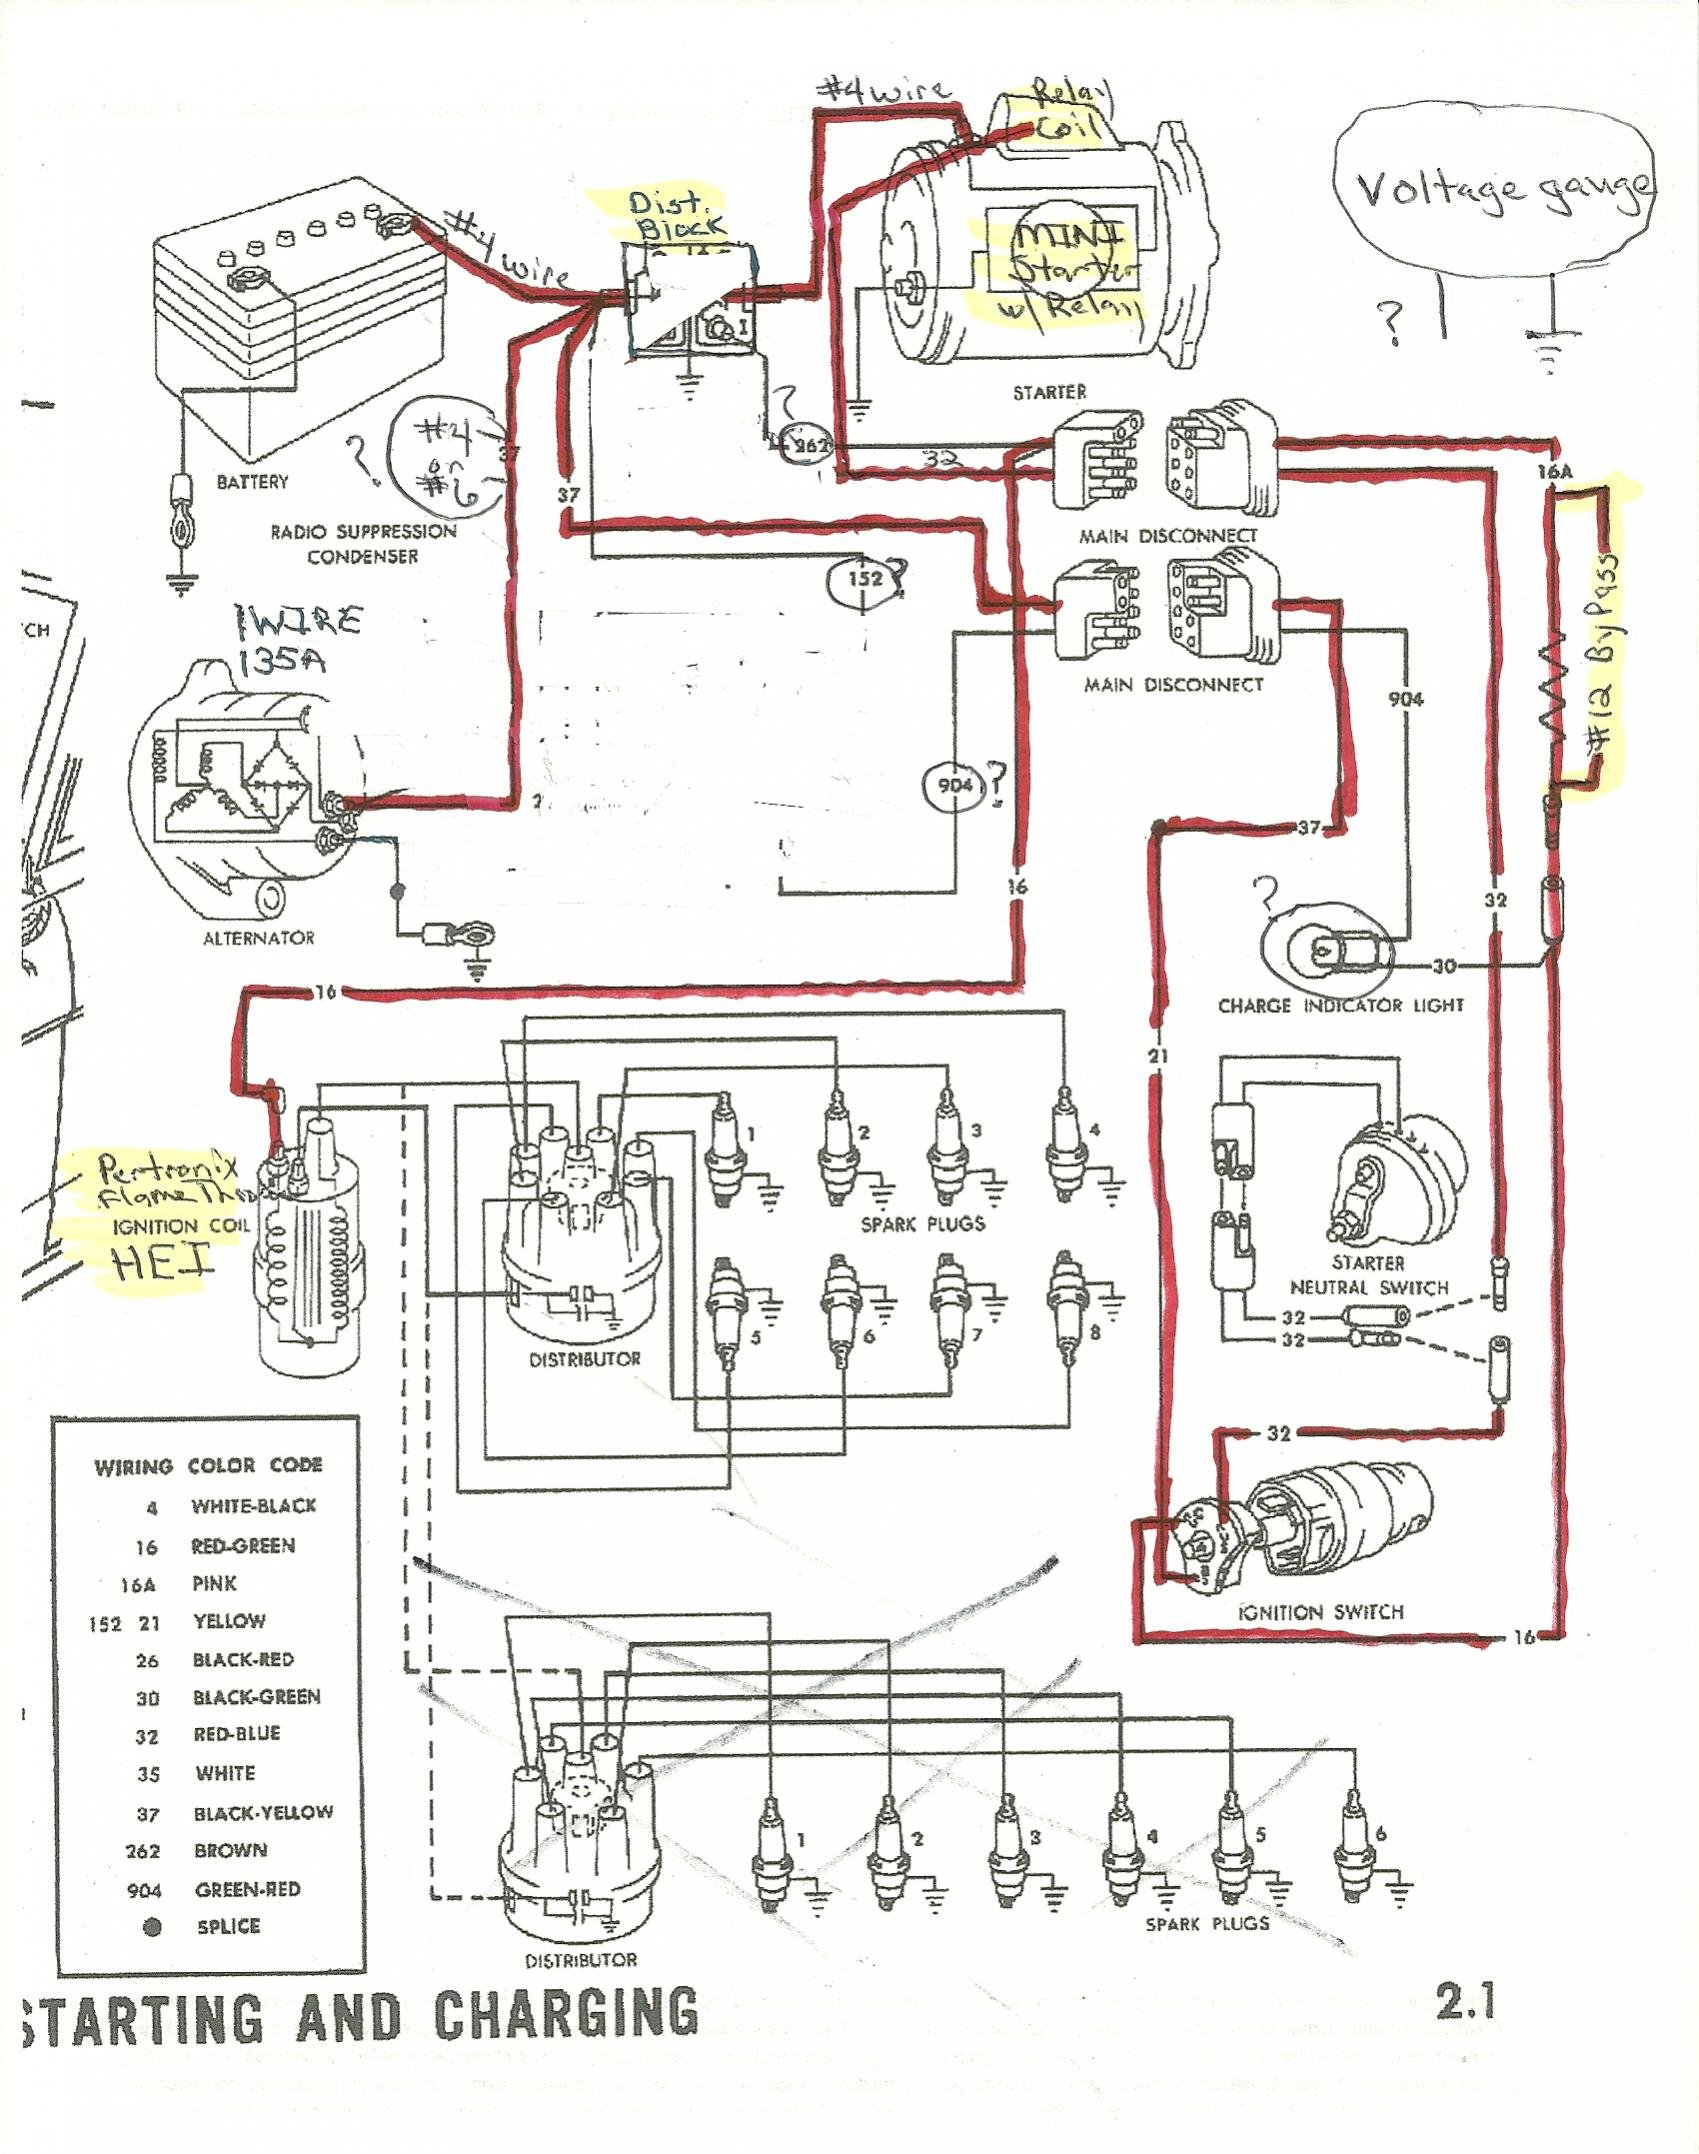 163469d1347246202 1965 alternator starter distributor wiring scan0001 1970 ford mustang mercury cougar original wiring diagram Ford Alternator Wiring Diagram at mr168.co